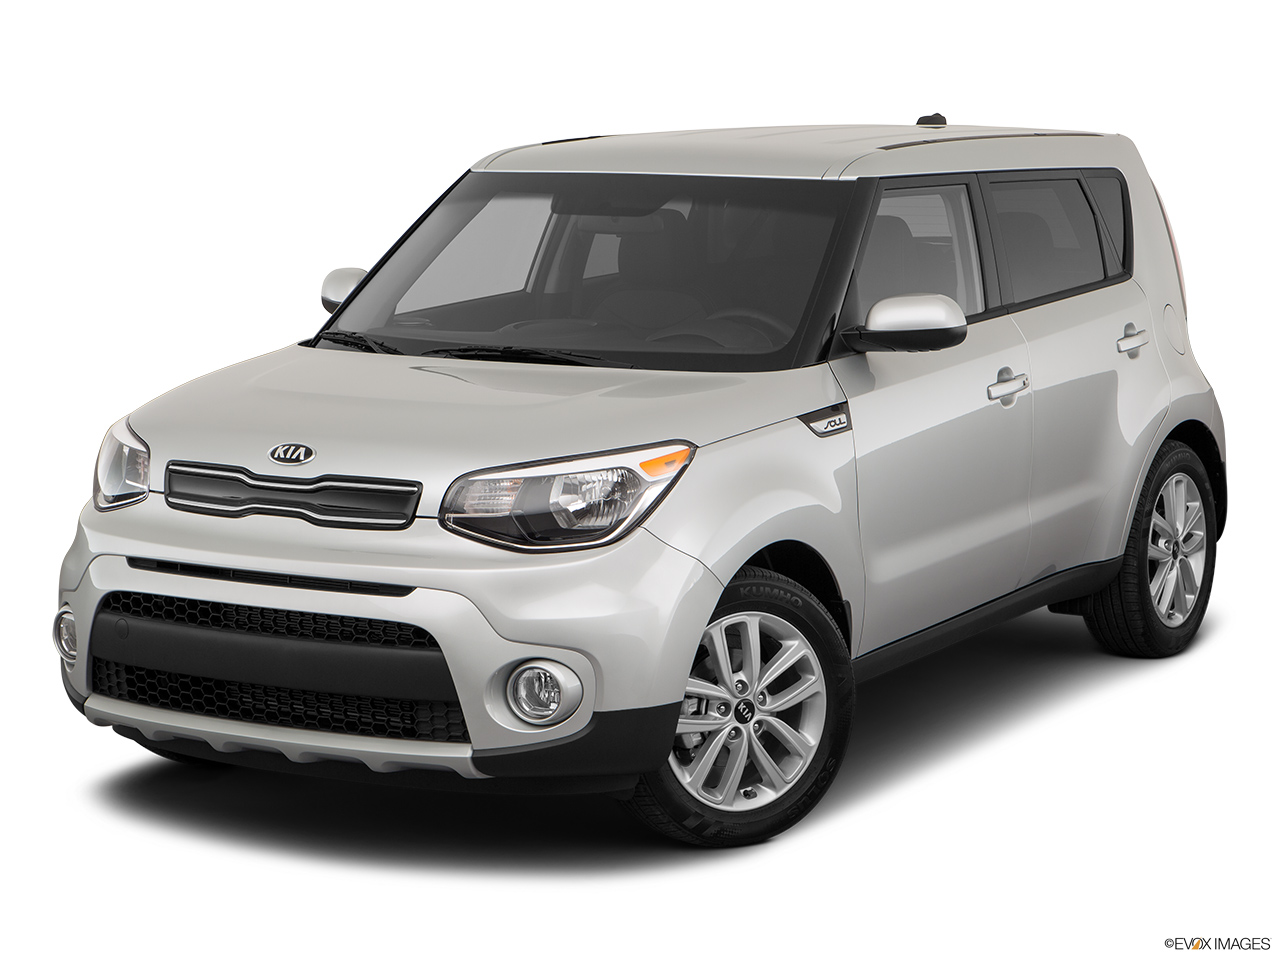 big deals on the 2019 kia soul in shelby nc 2019 kia soul in shelby nc